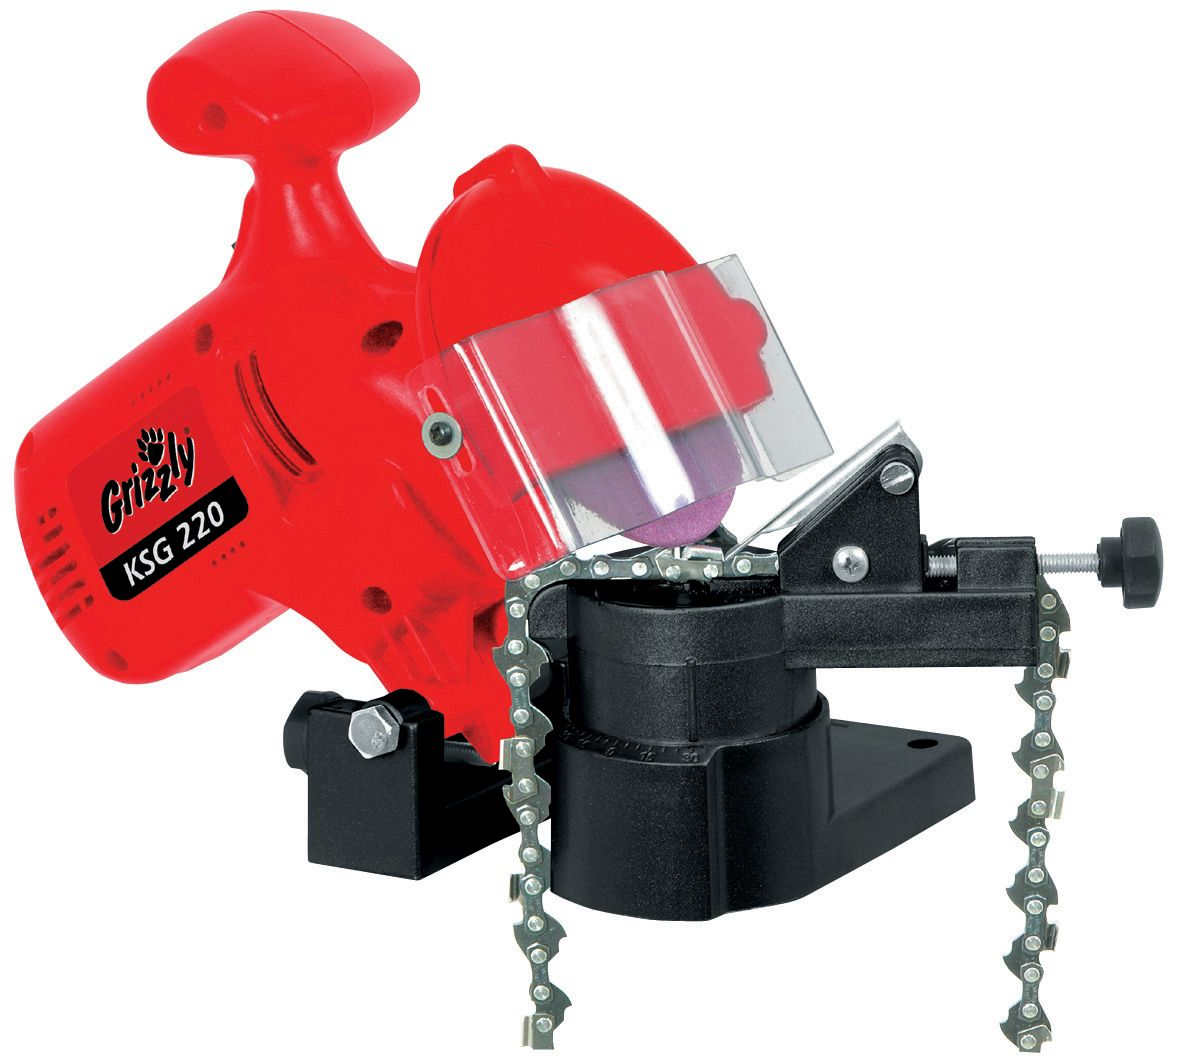 Image of Grizzly Electric chainsaw chain sharpener